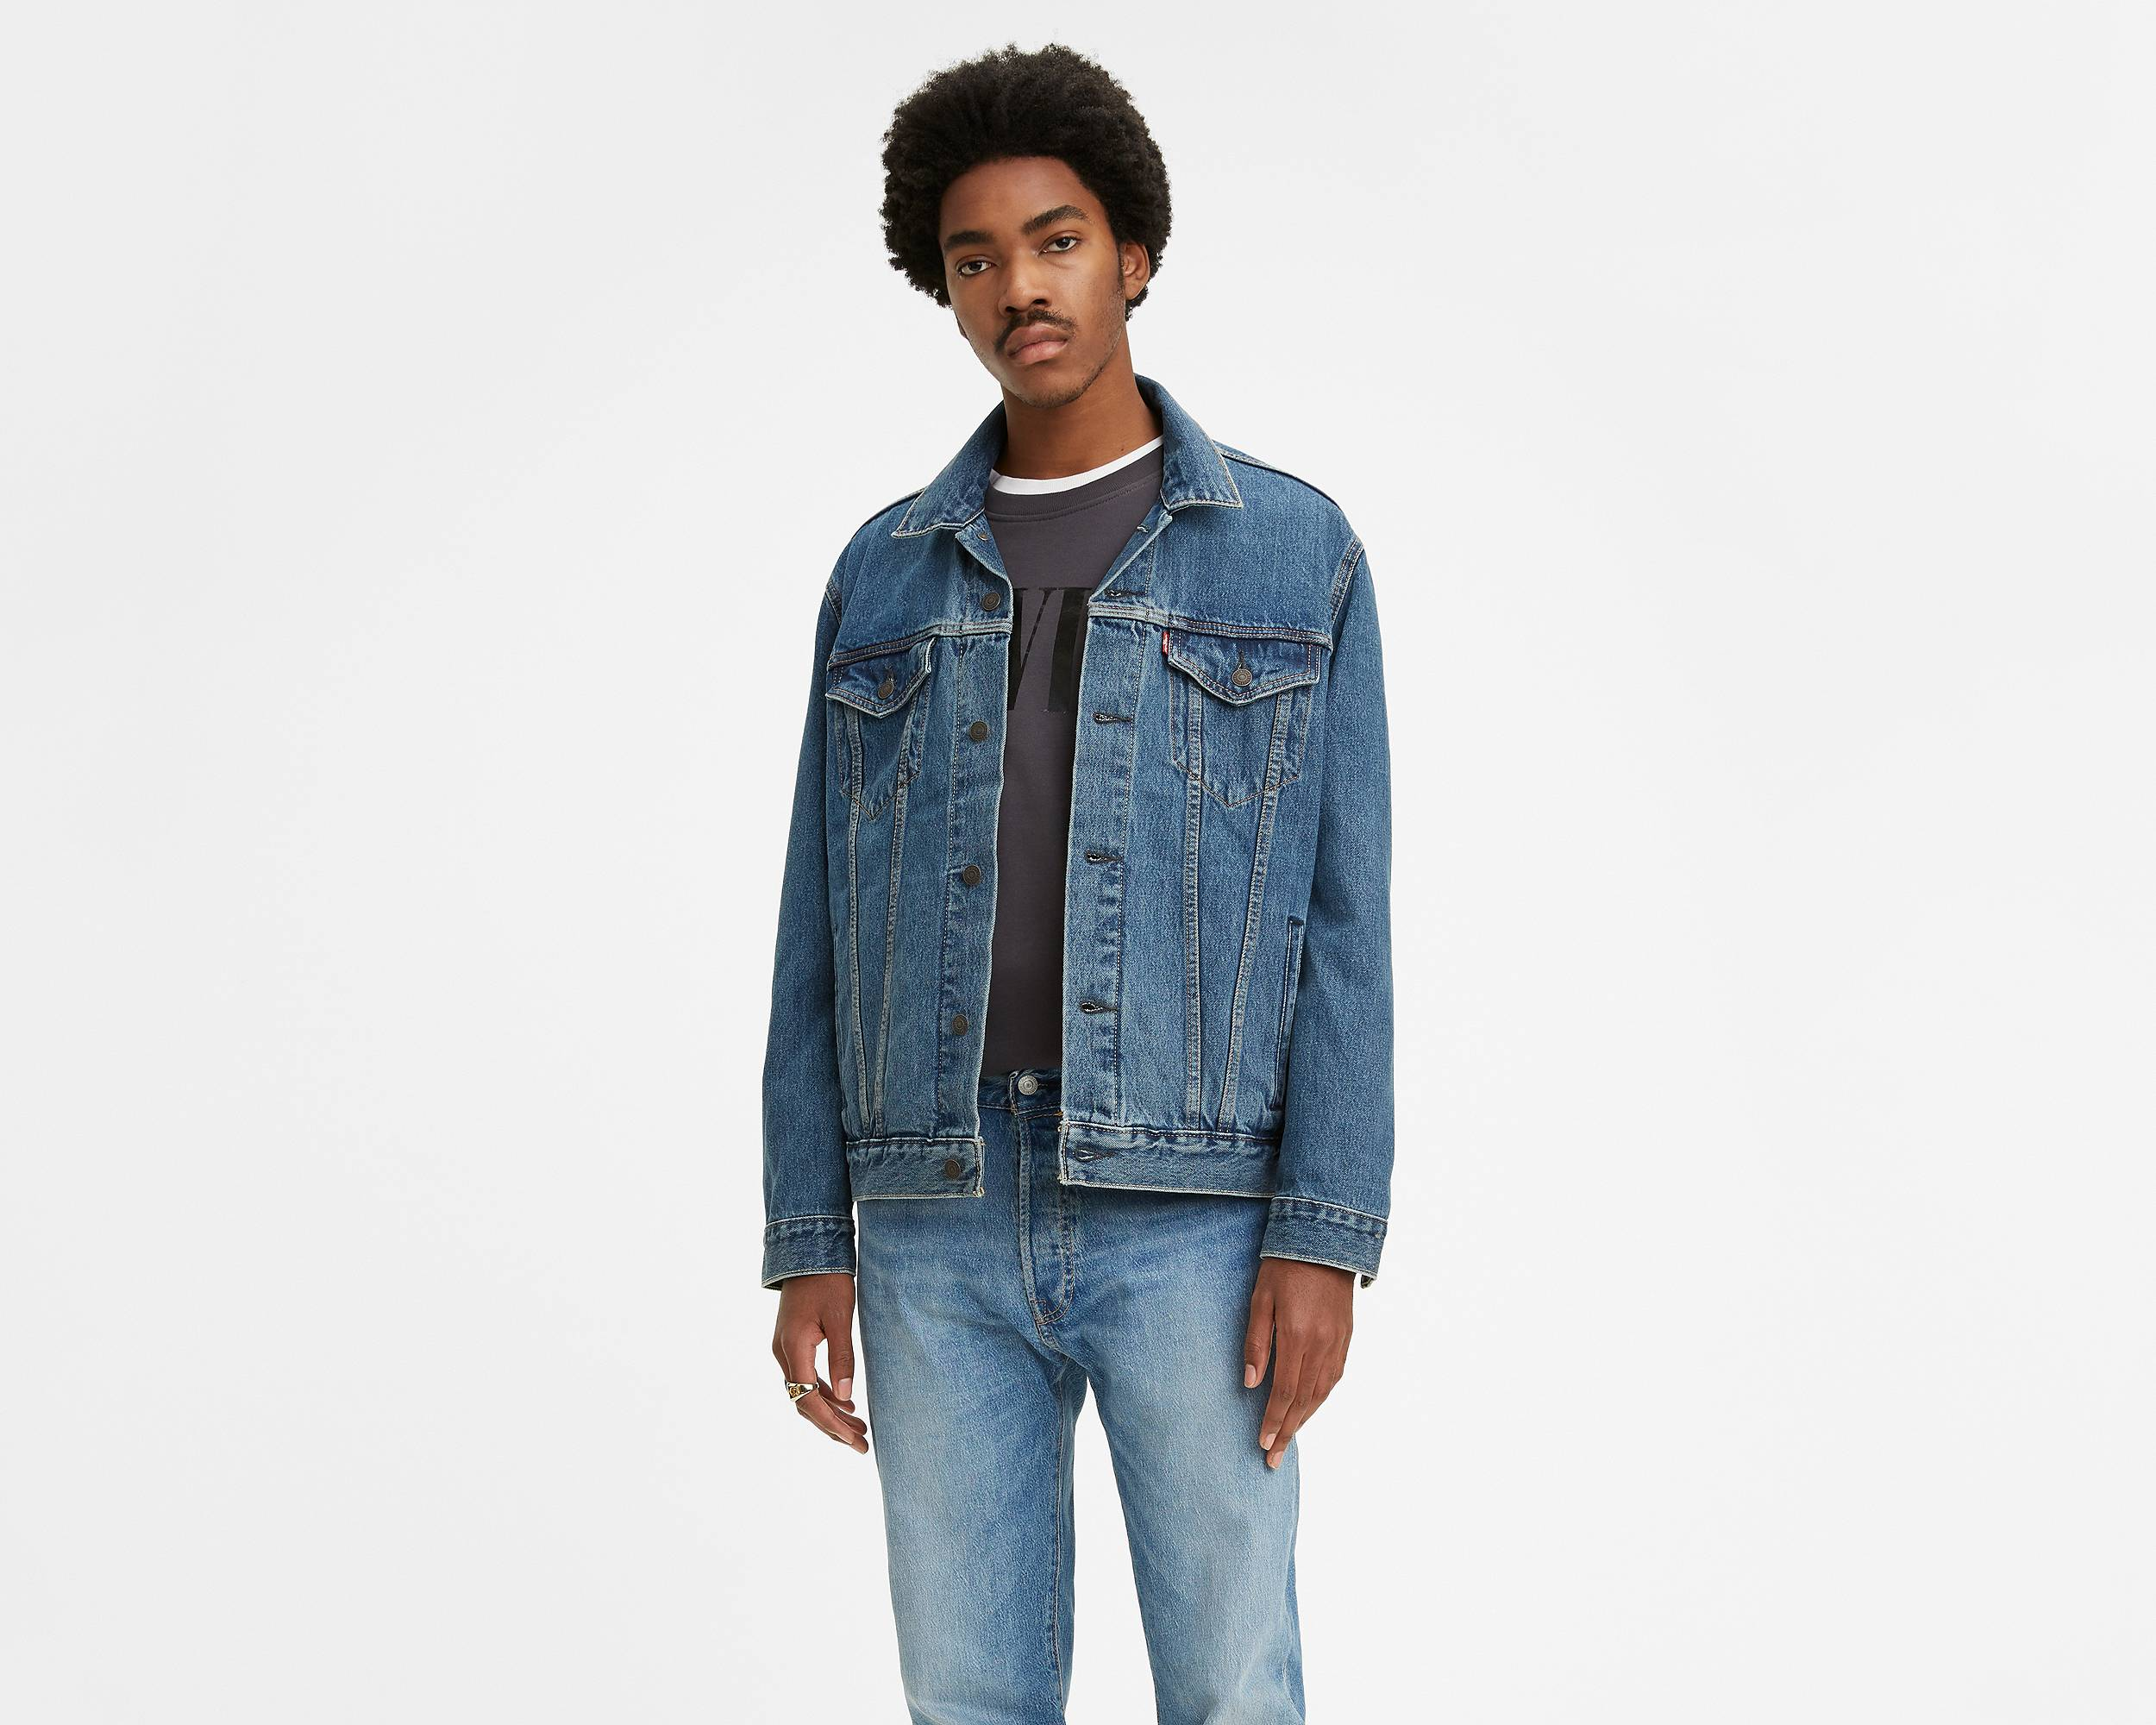 Men S Denim Jackets CTAxYj